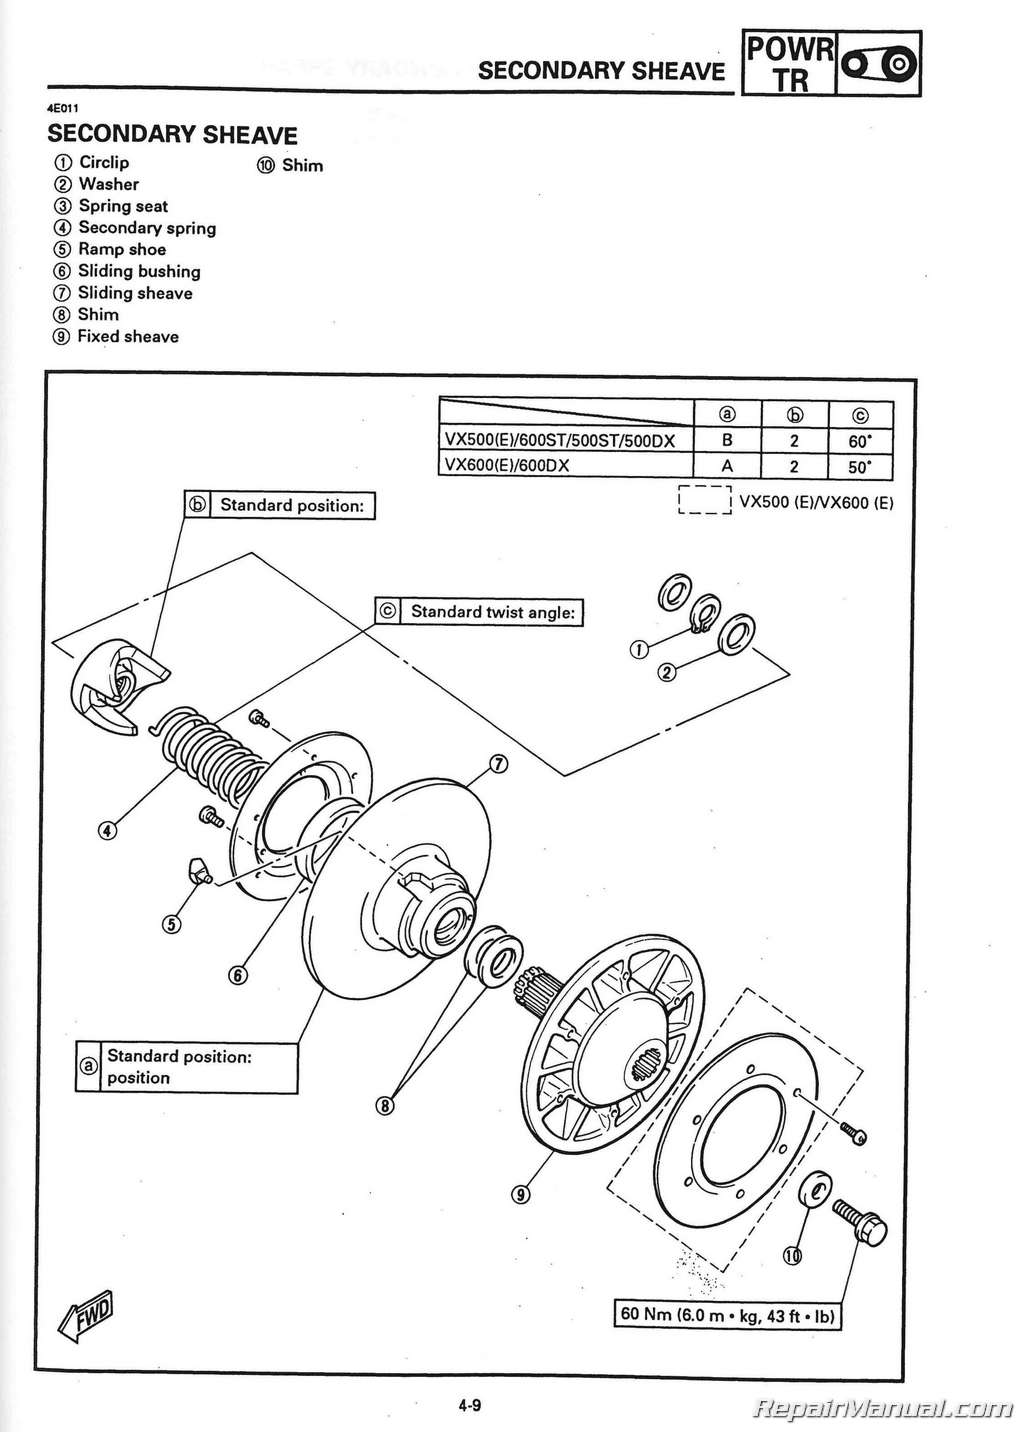 1994 1996 Yamaha V Max 500 Vx500 And 600 Vx Snowmobile Kodiak Carburetor Diagram Wiring Schematic Service Manual